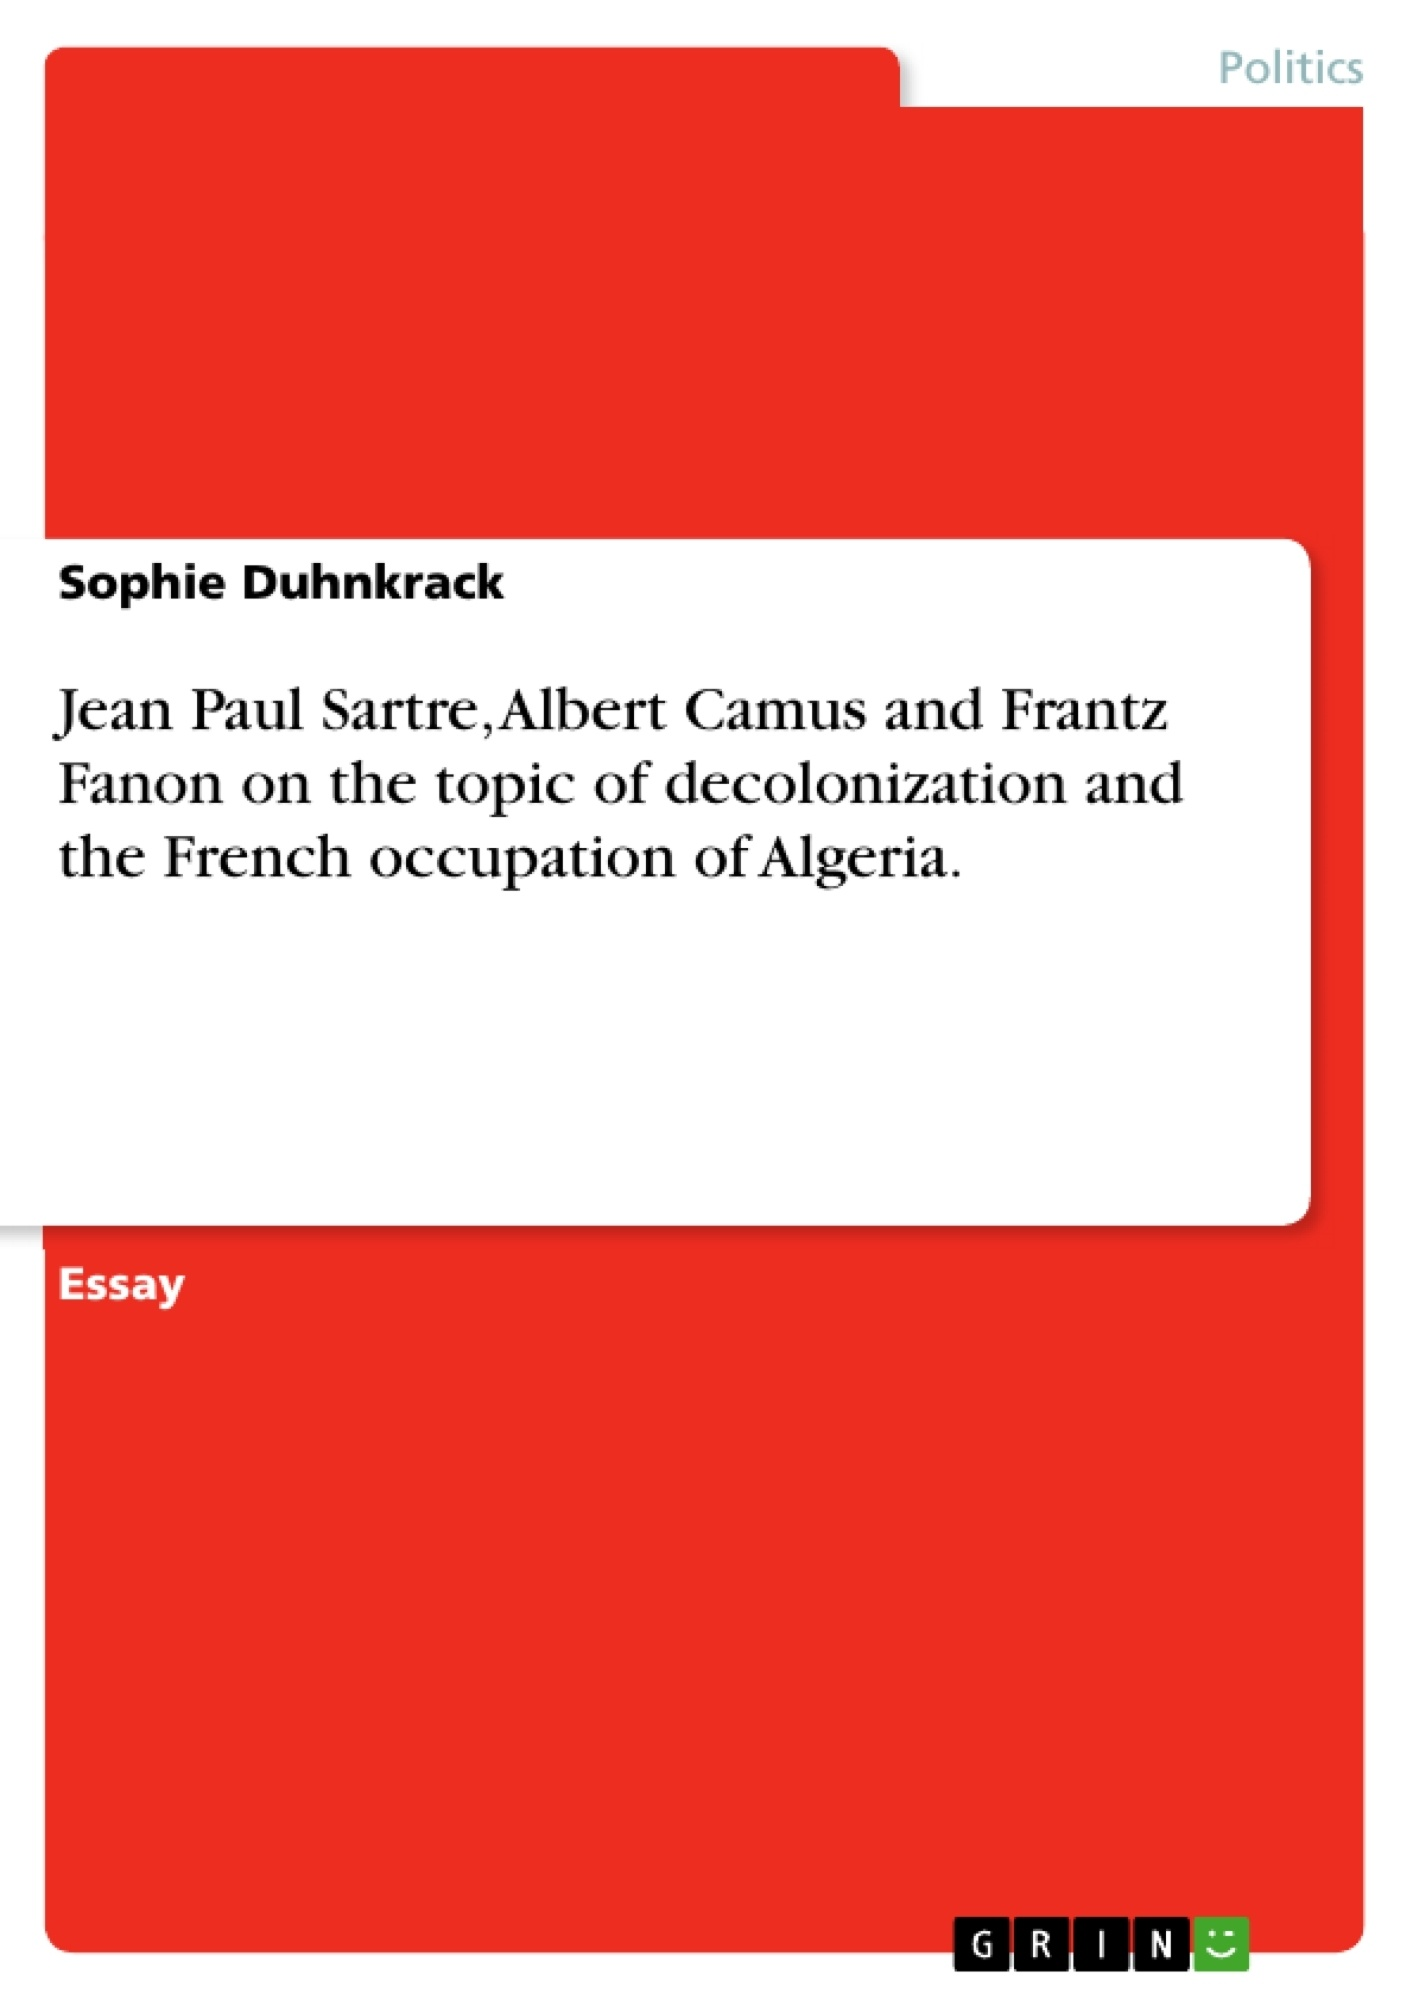 Title: Jean Paul Sartre, Albert Camus and Frantz Fanon on the topic of decolonization and the French occupation of Algeria.